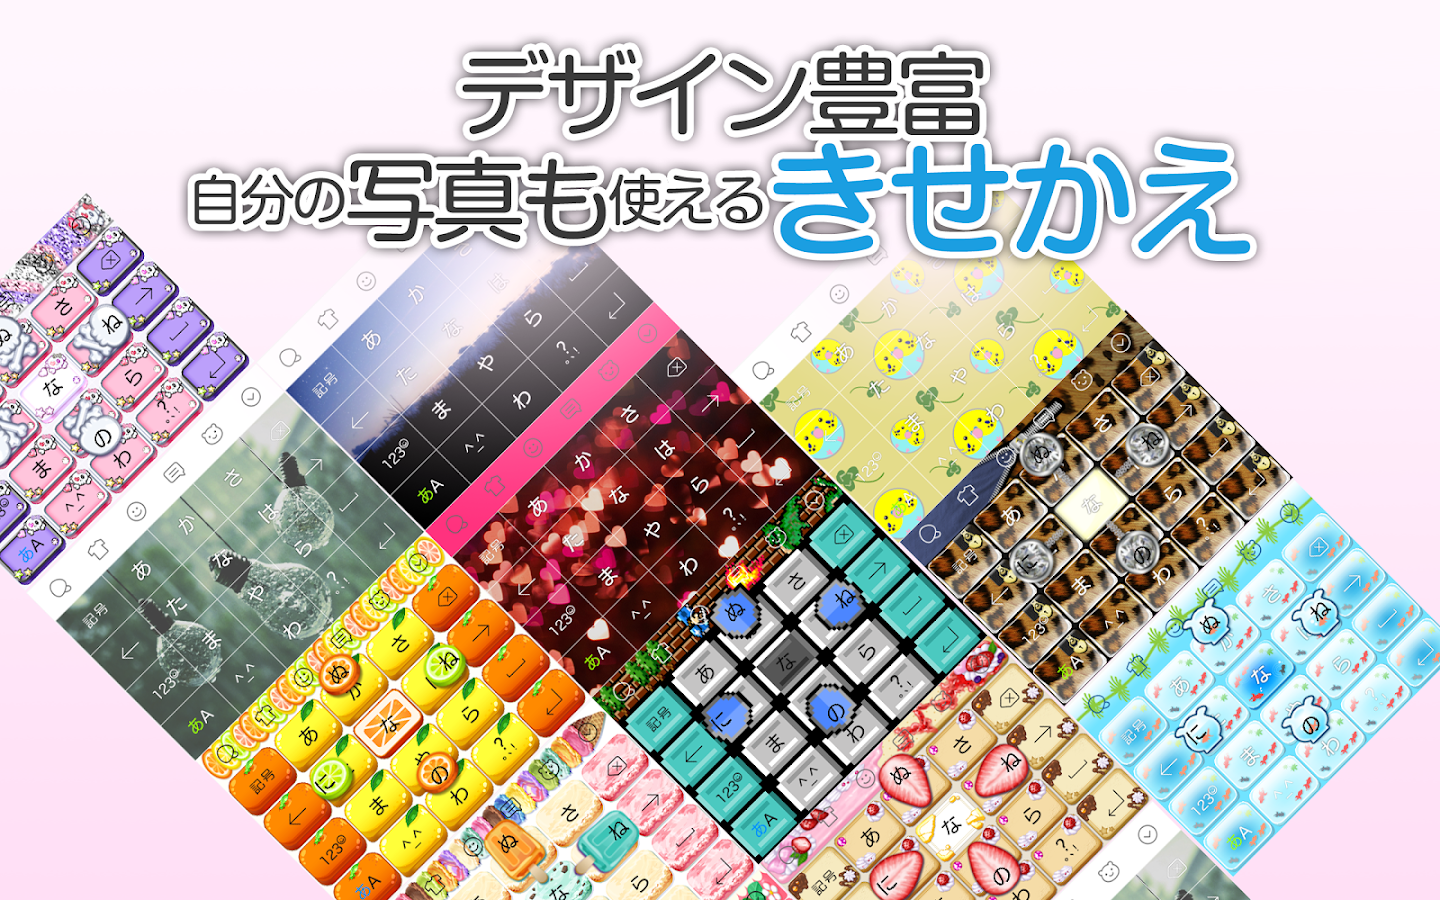 Simeji Japanese keyboard+Emoji Screenshot 13